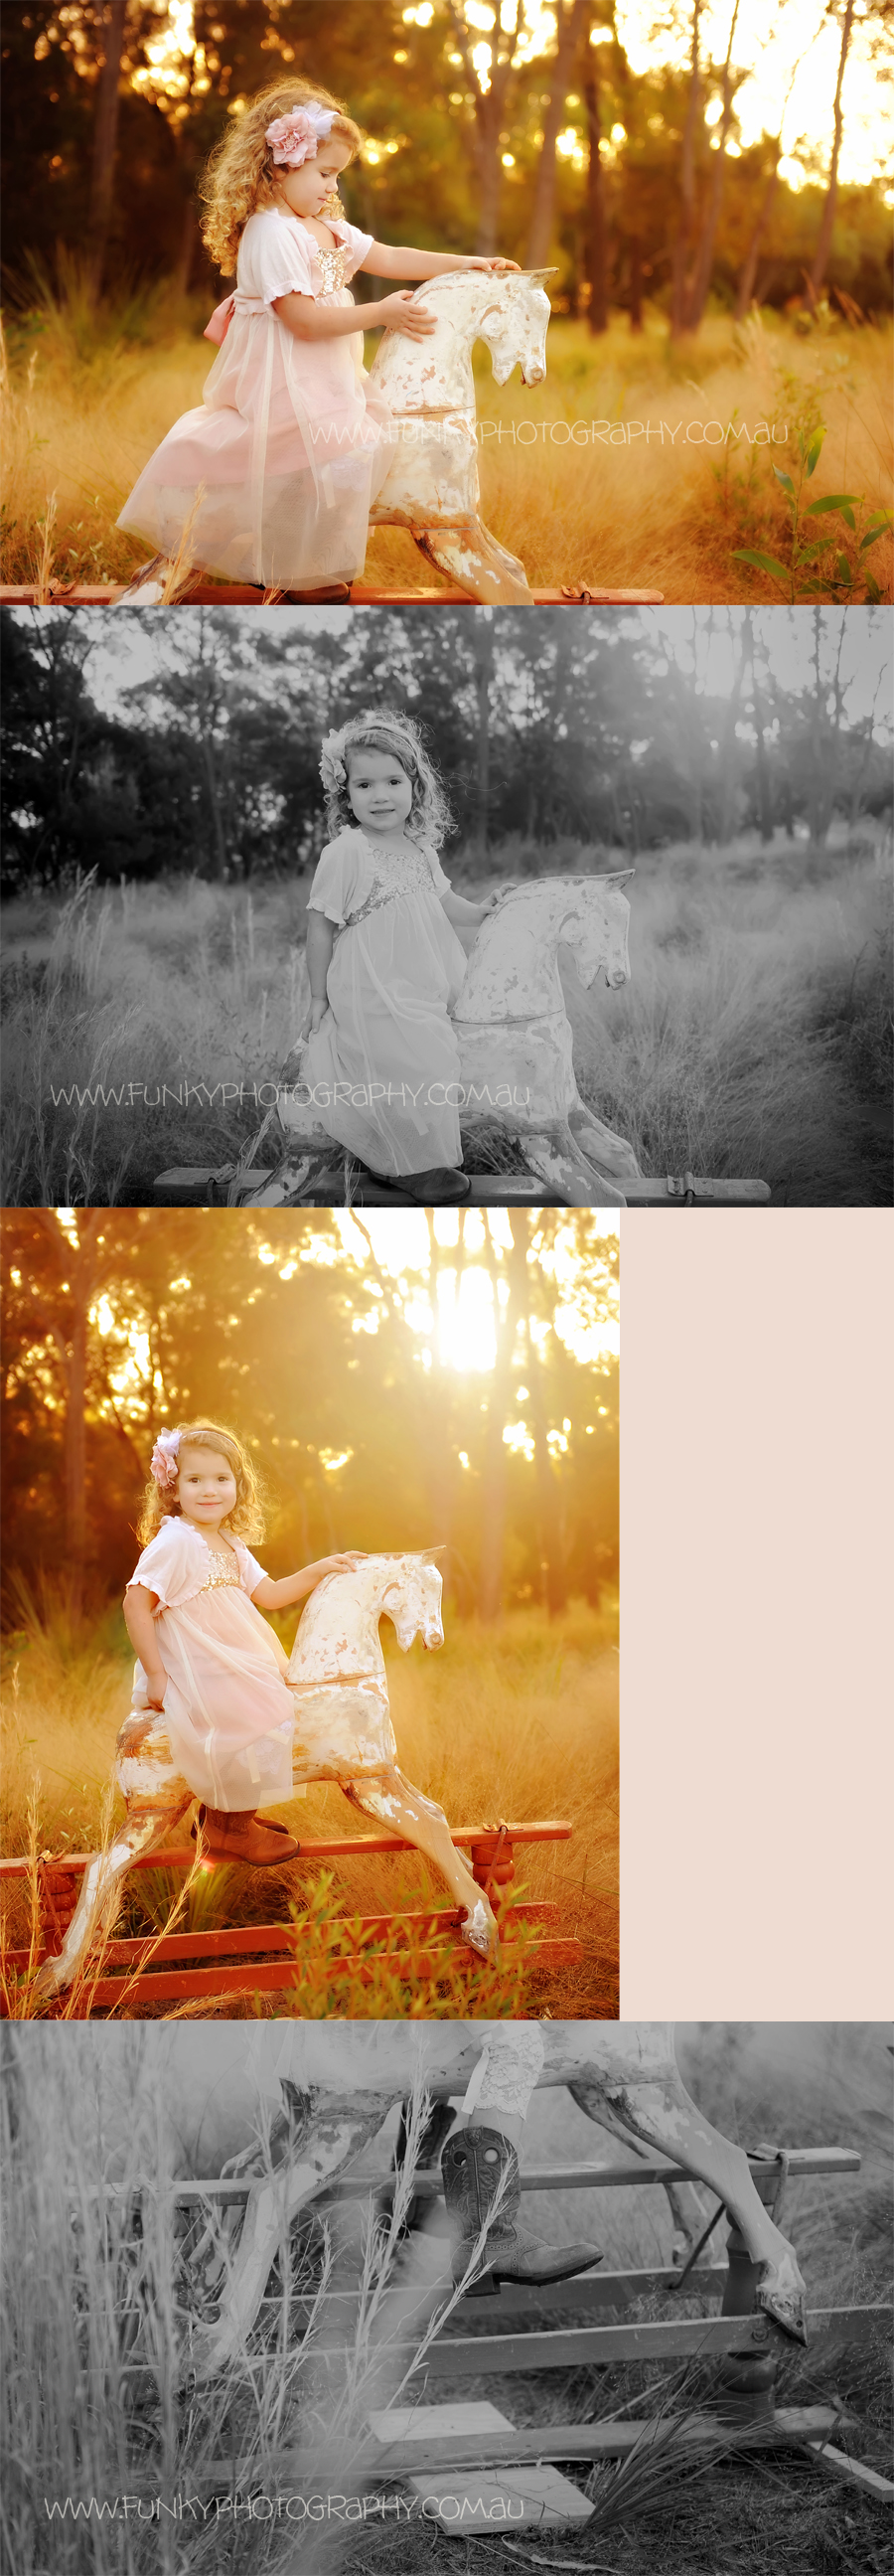 child on a rocking horse with sunflare and backlight